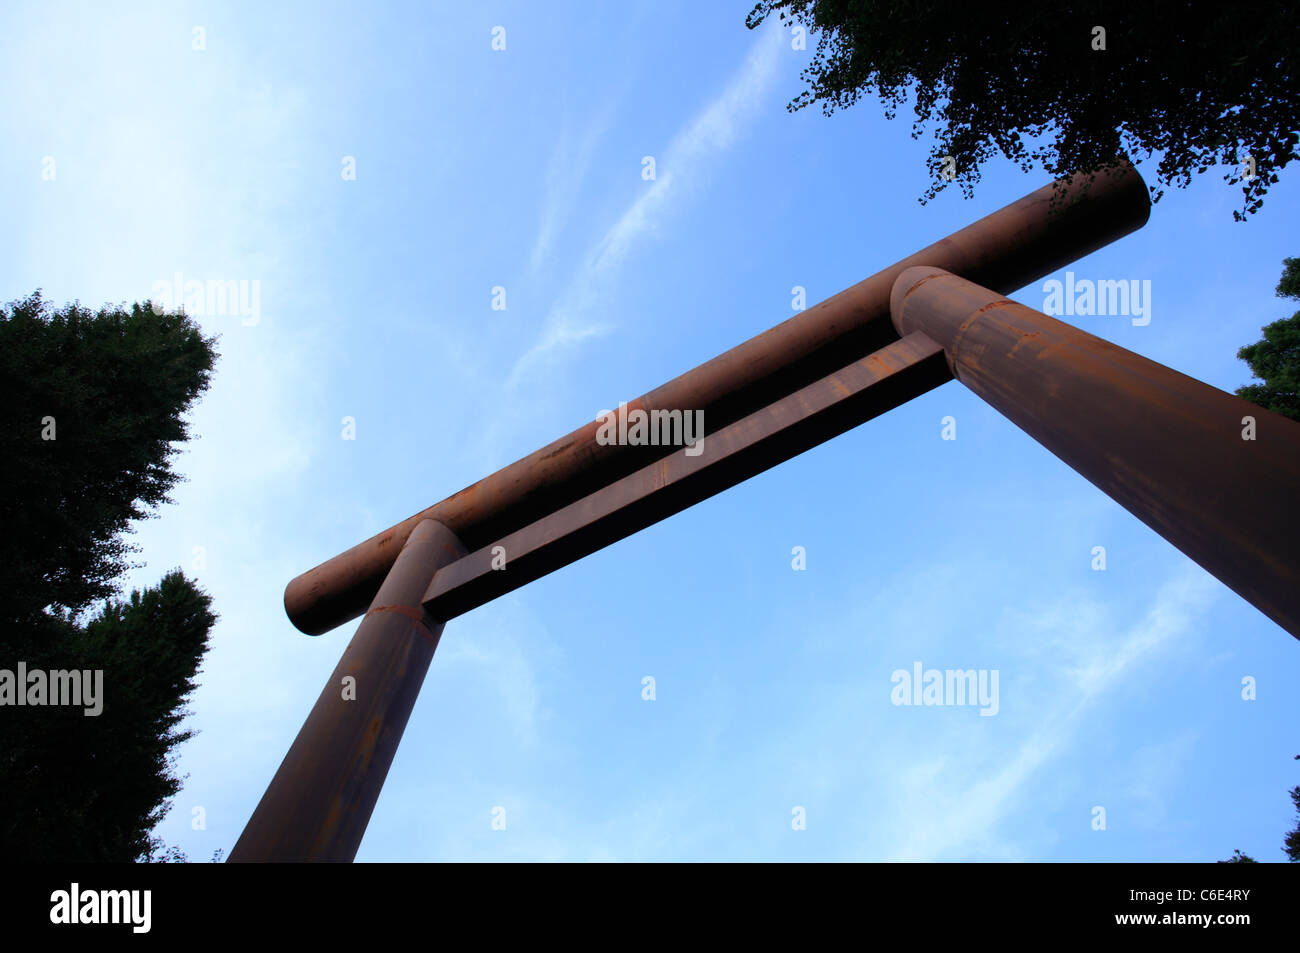 TOKYO - AUGUST 18: Daiichi Torii (first gate) in Yasukuni Shrine on August 18, 2011 in Chiyoda, Tokyo, Japan. - Stock Image